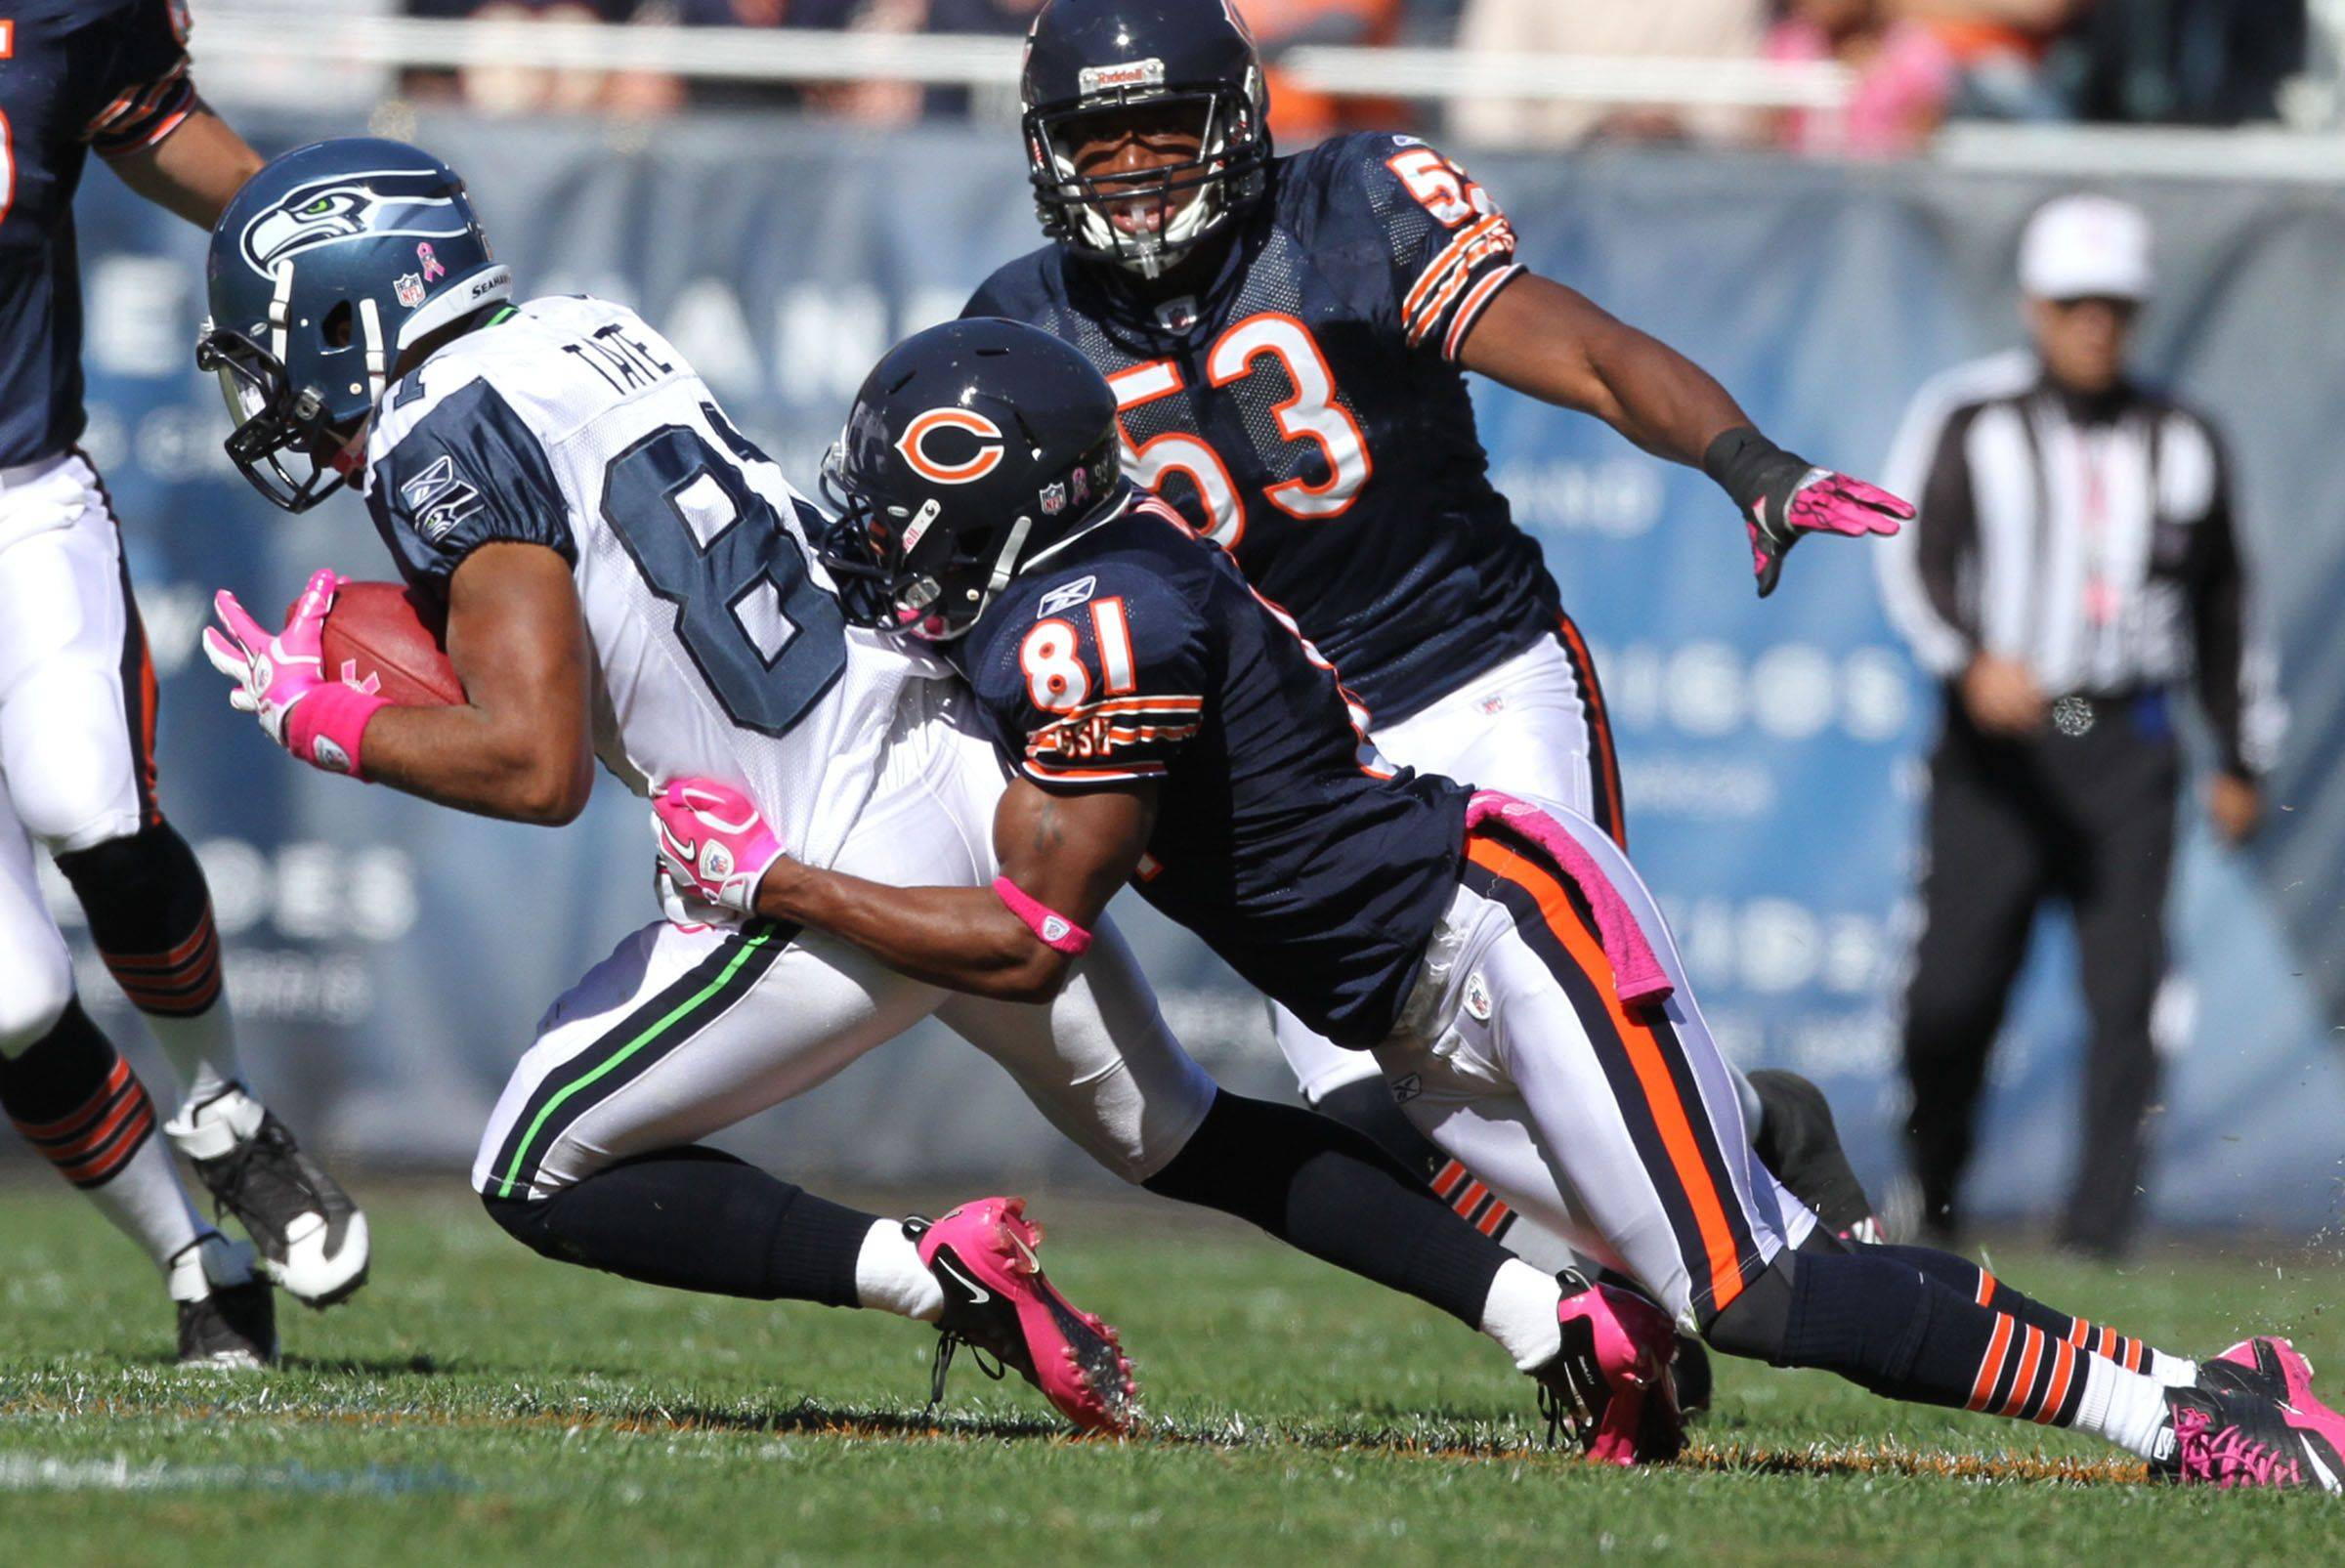 Chicago Bears' wide receiver Rashied Davis pulls down Seattle Seahawks' wide receiver Golden Tate at Soldier Field.